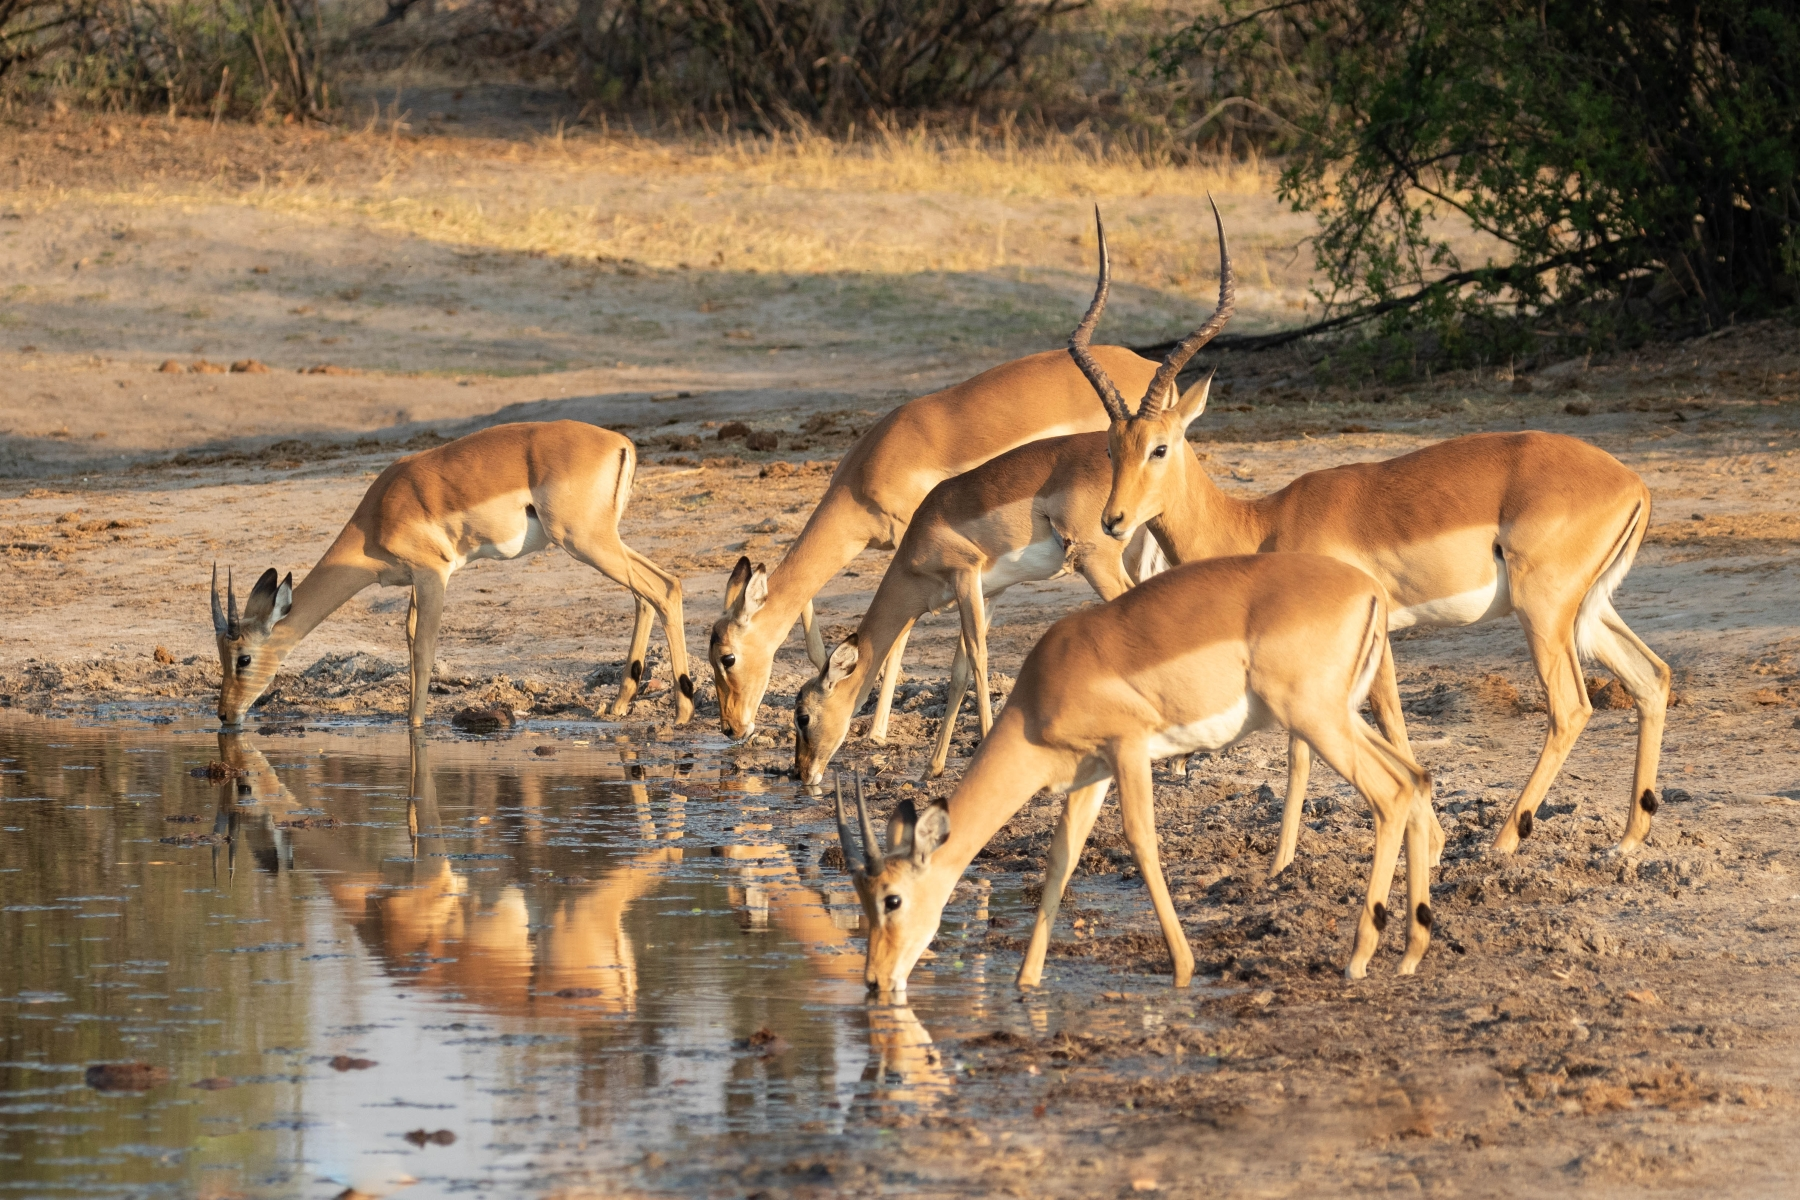 As-predators-wait-around-watering-holes-at-dusk-impala-drink-during-the-hottest-part-of-the-day-NB-0-Place-by-Vicki-Stephens-LV